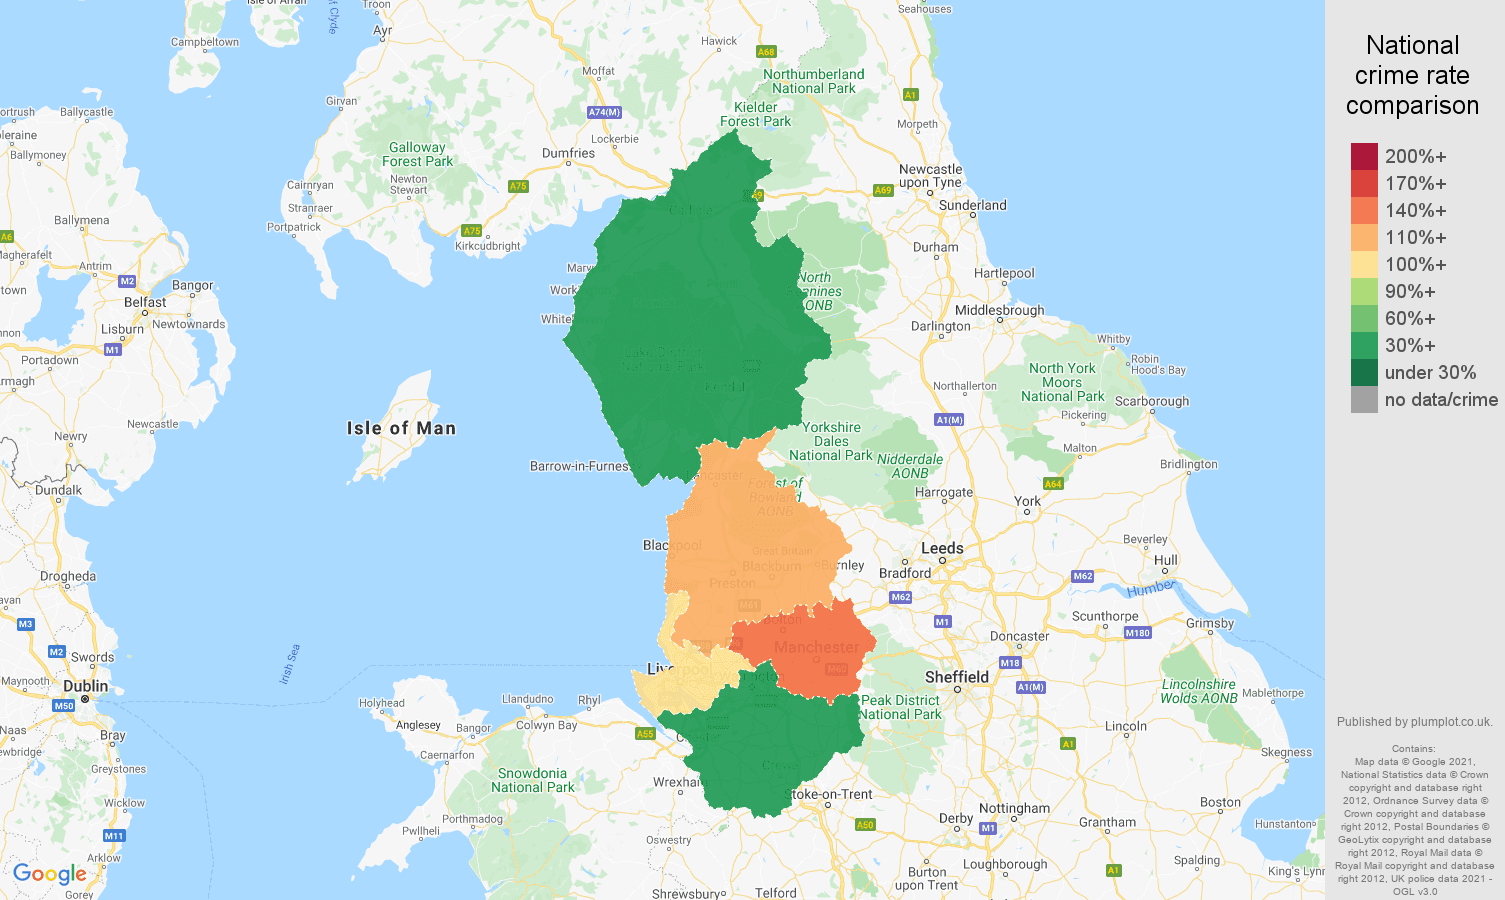 North West burglary crime rate comparison map